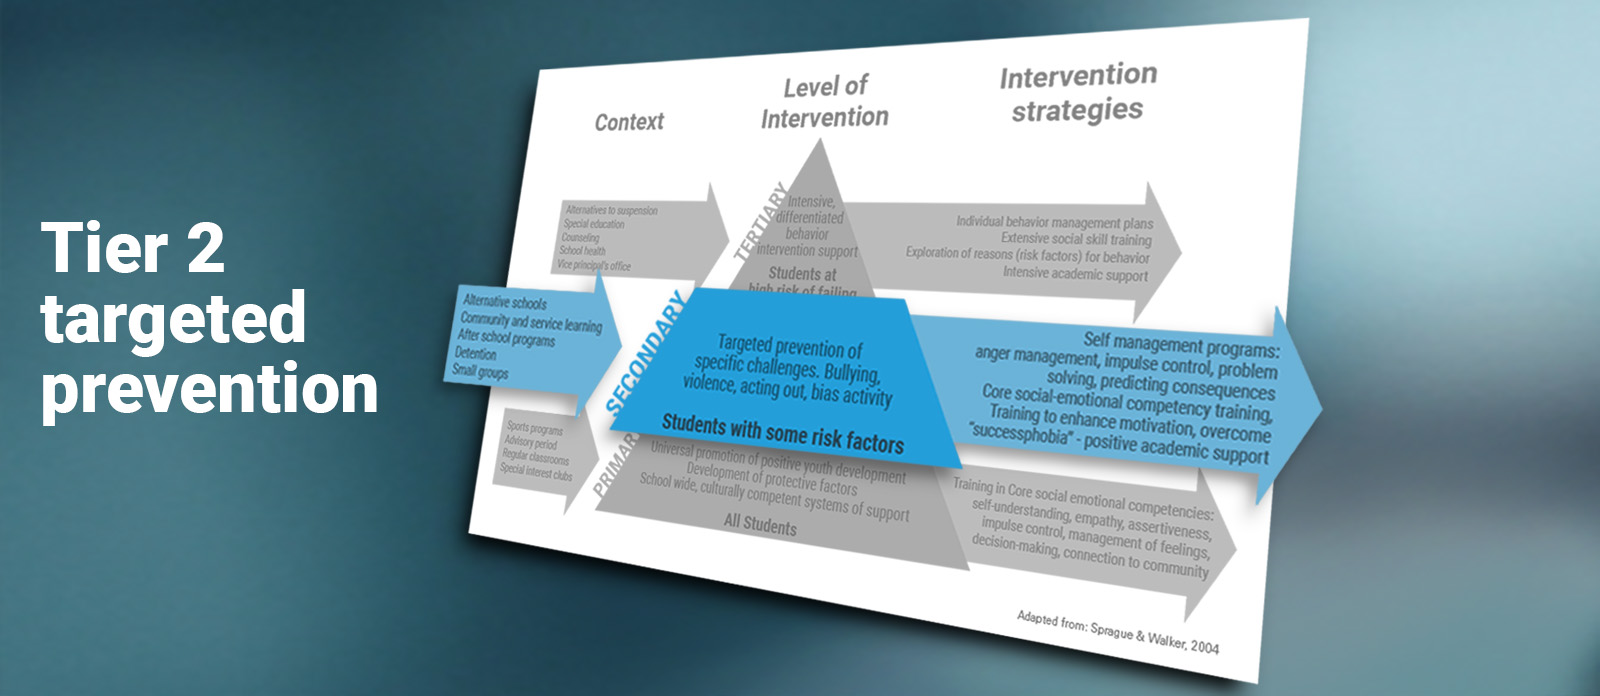 Banner image for the second tier of Ripple Effects' behavioral intervention program: targeted prevention.